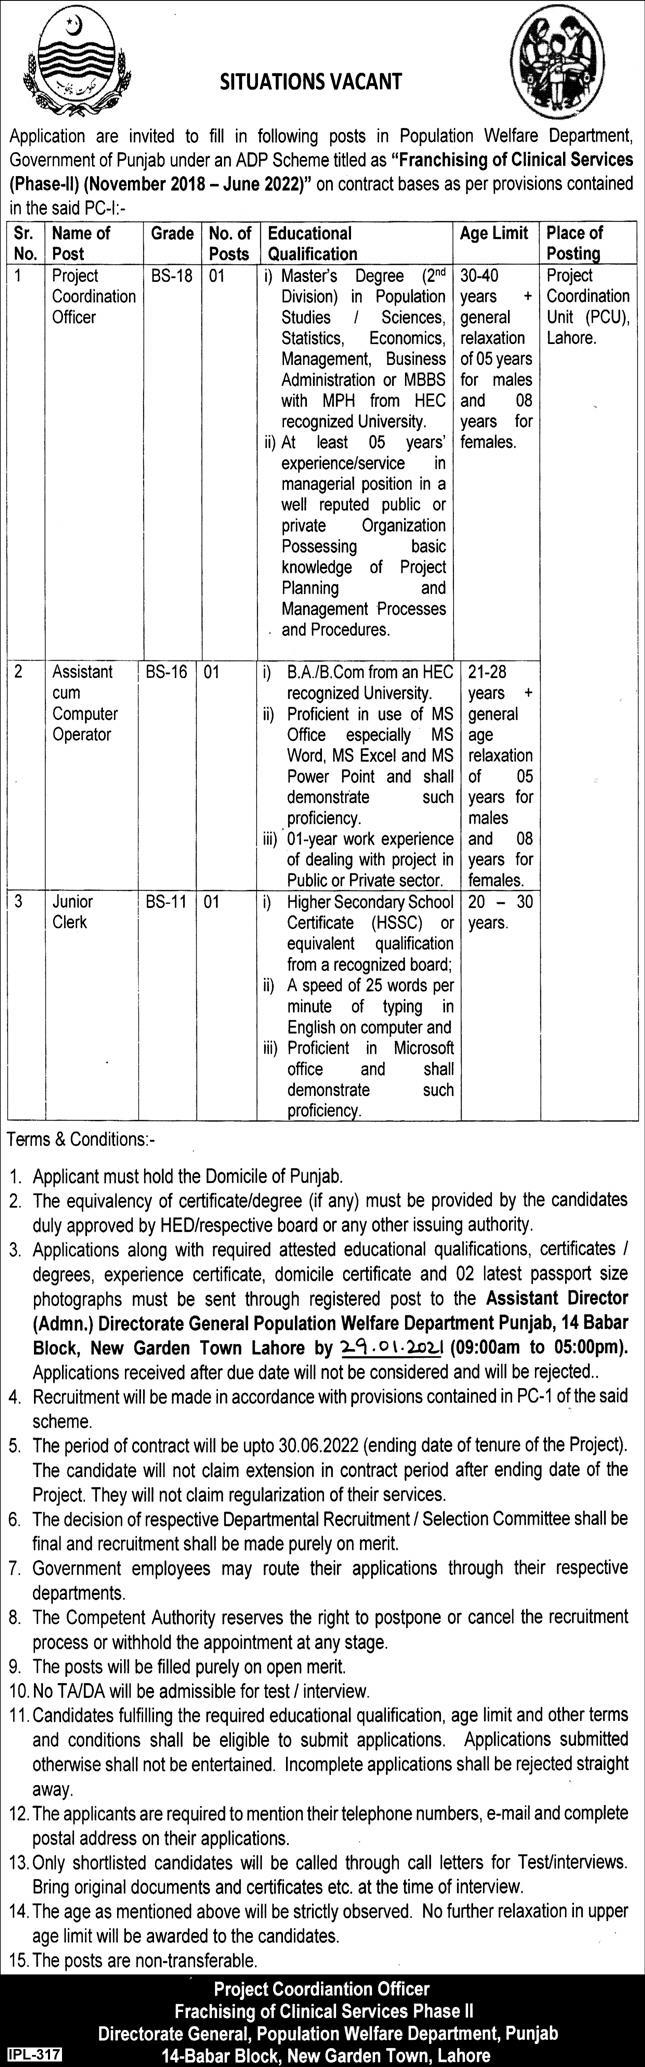 Junior Clerk (BS-11) Jobs in Franchising of Clinical Services 17 Jan 2021